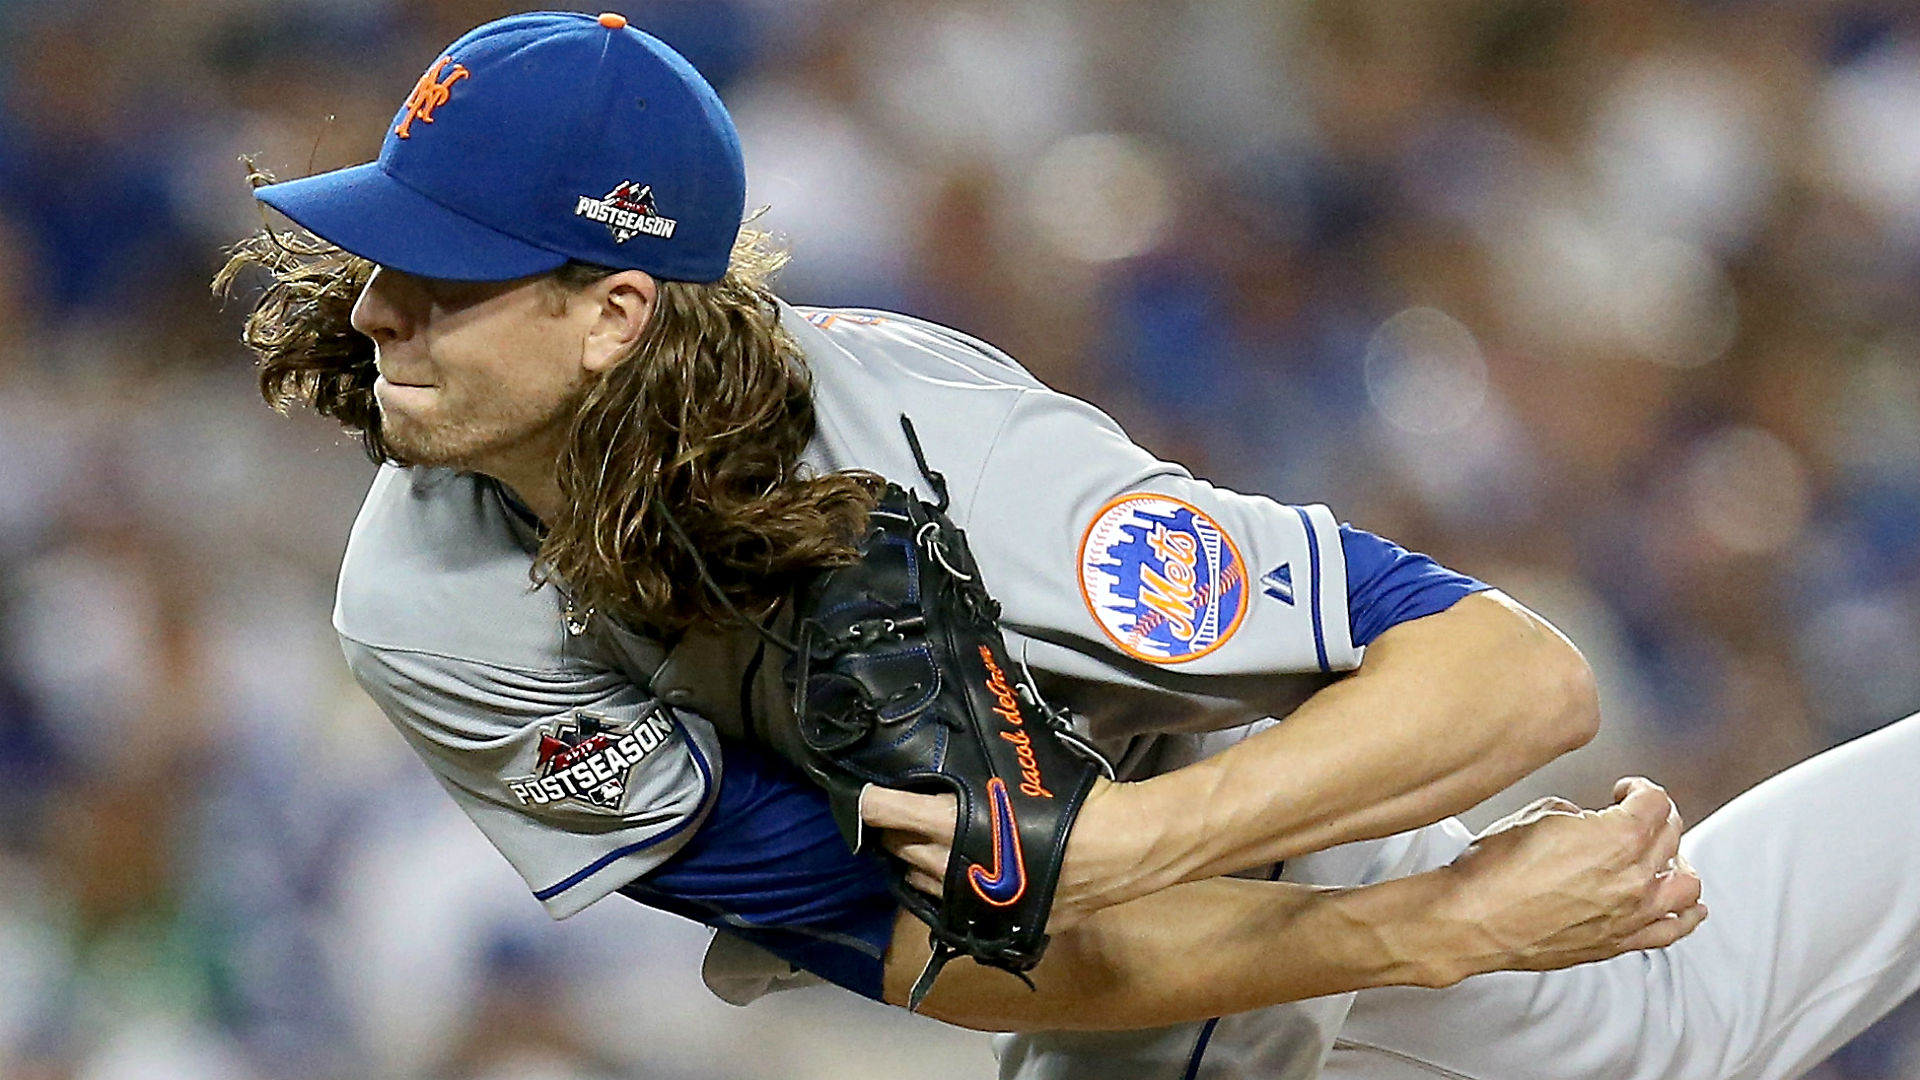 NLCS Game 3 odds, props and pick – Mets favored on road for time this postseason